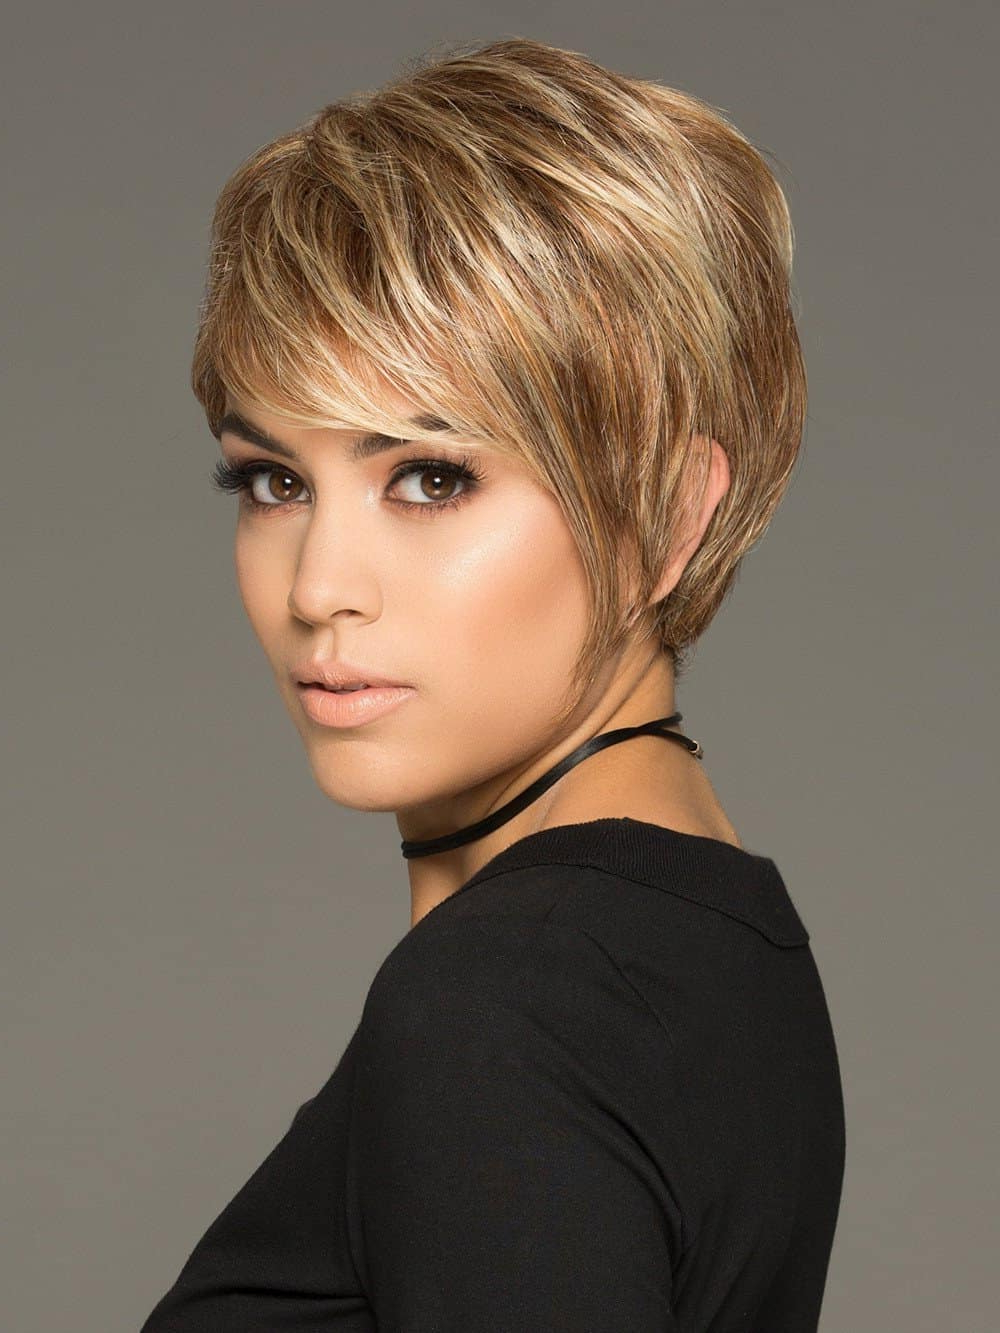 10 Strawberry Blonde Hairstyle To Match Your Short Locks Throughout Pixie Bob Hairstyles With Blonde Babylights (View 1 of 20)